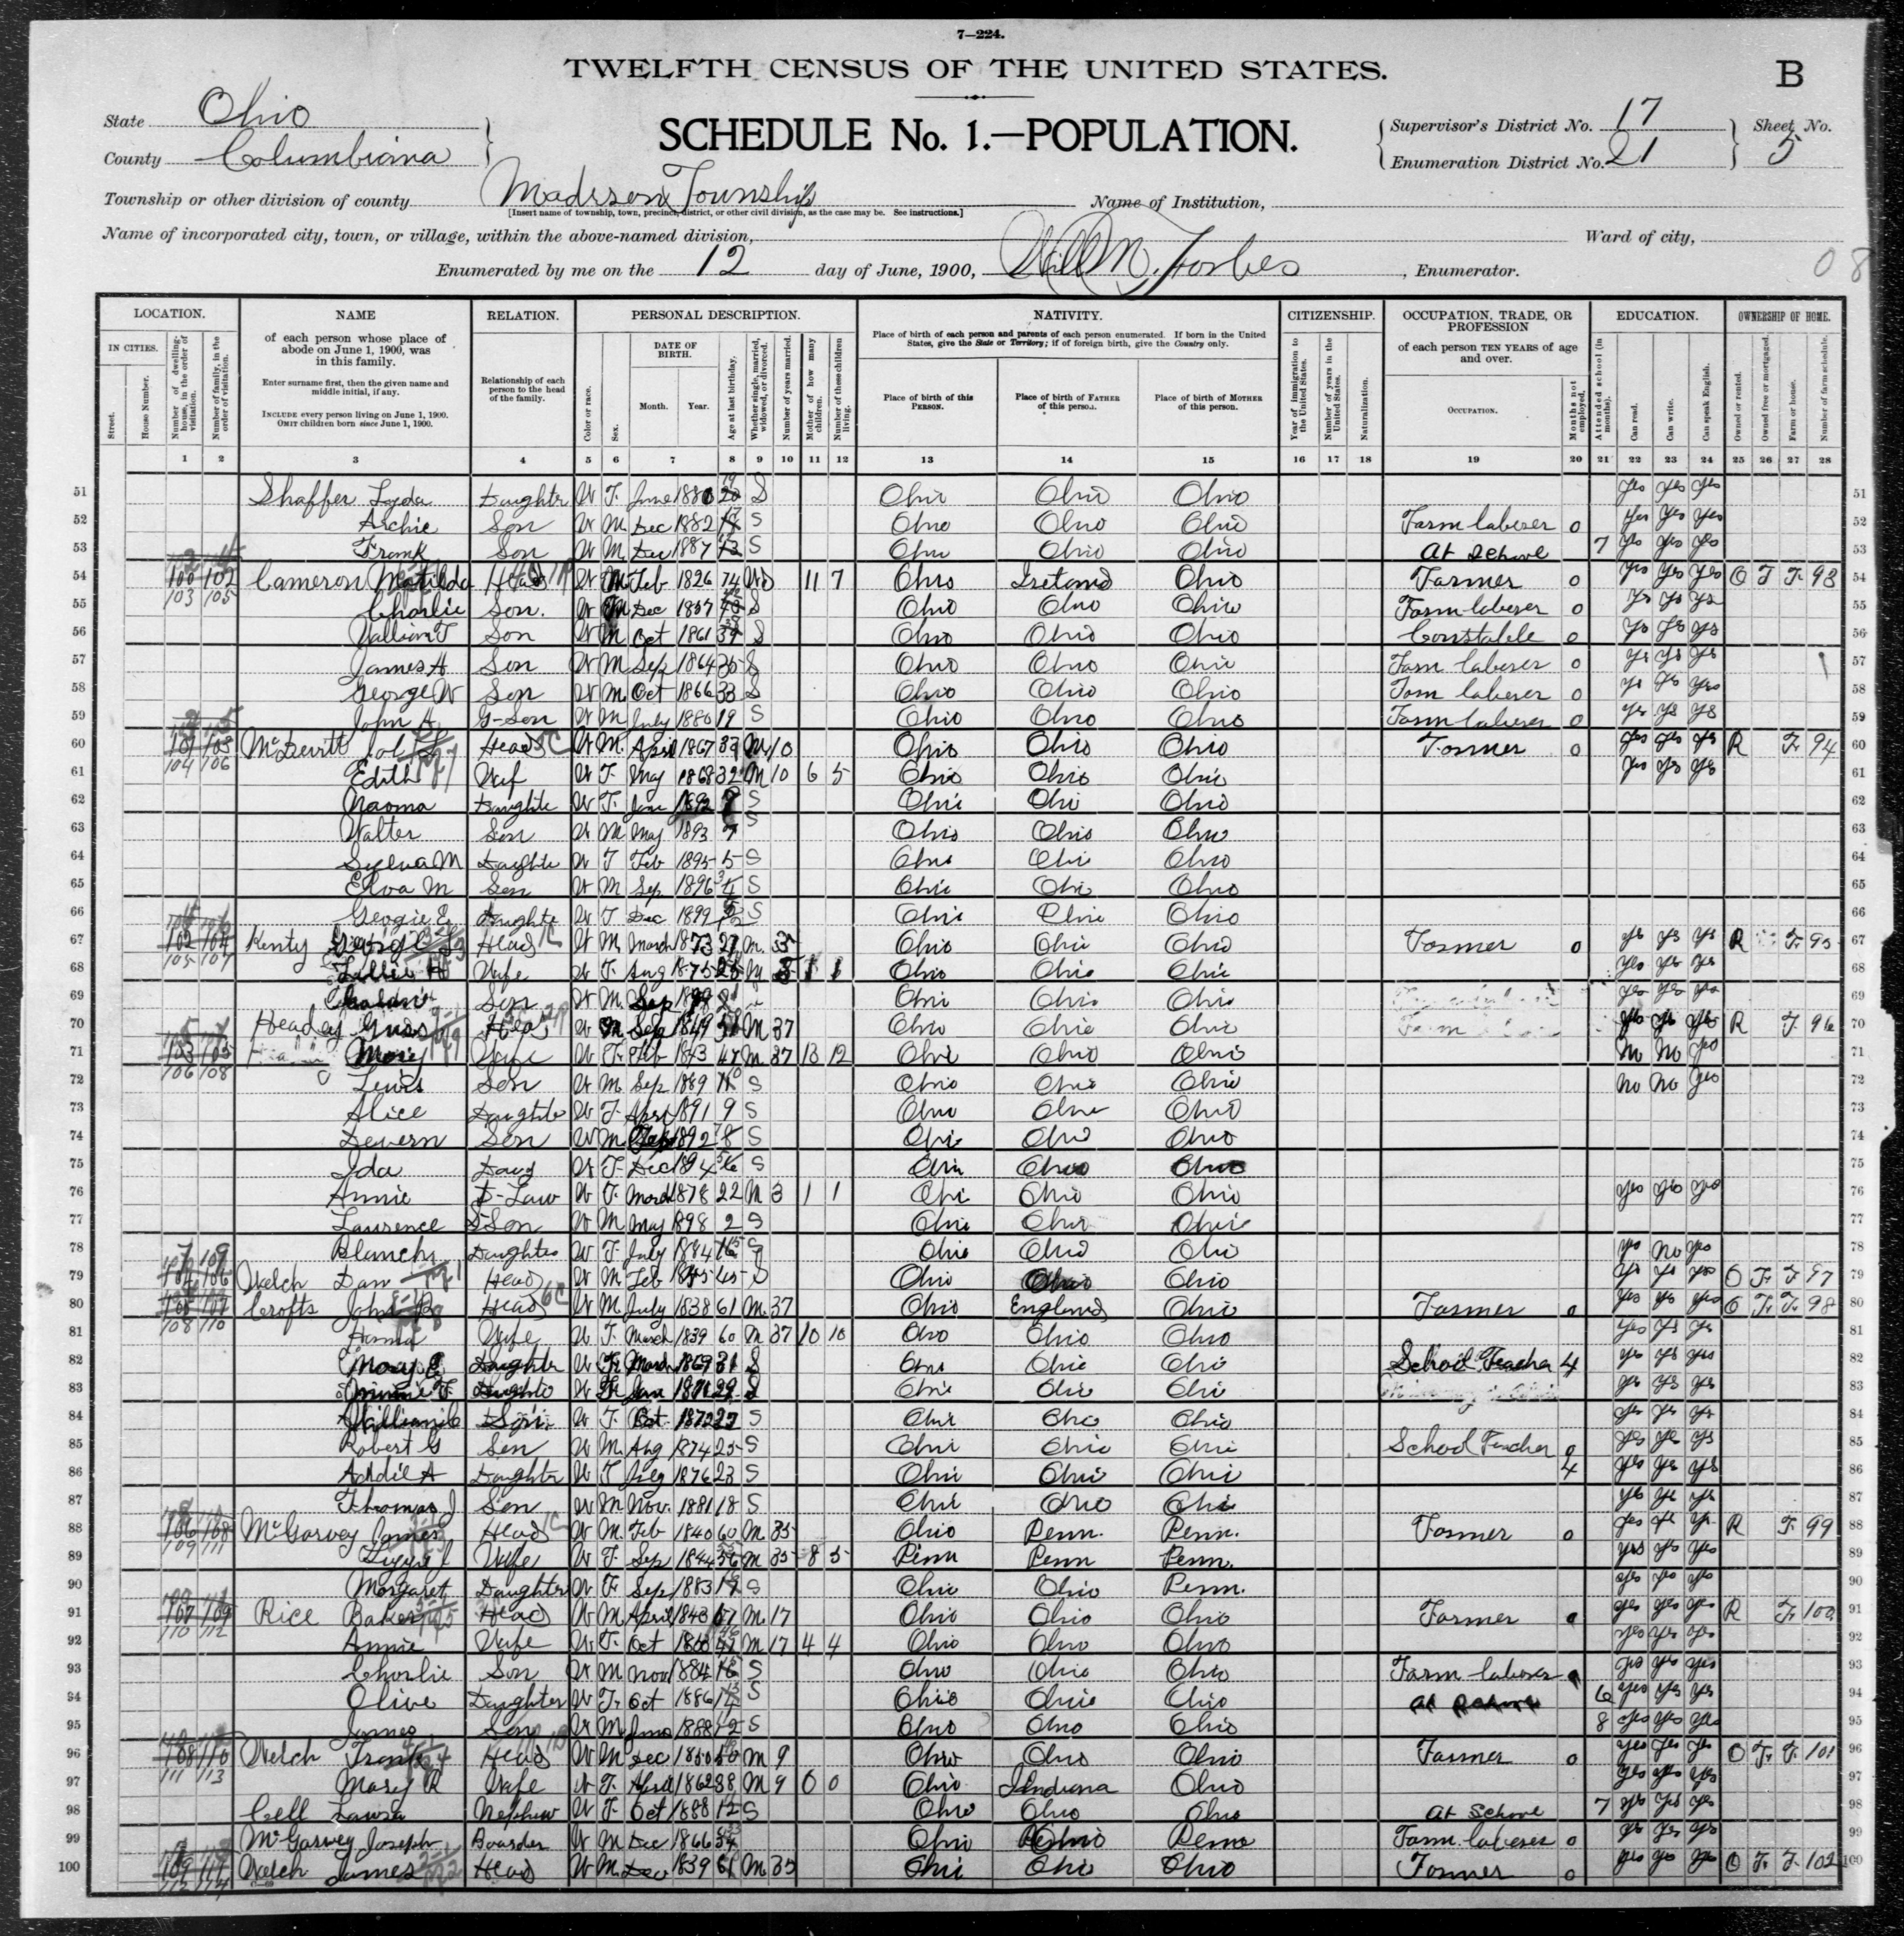 Ohio: COLUMBIANA County, Enumeration District 21, Sheet No. 5B